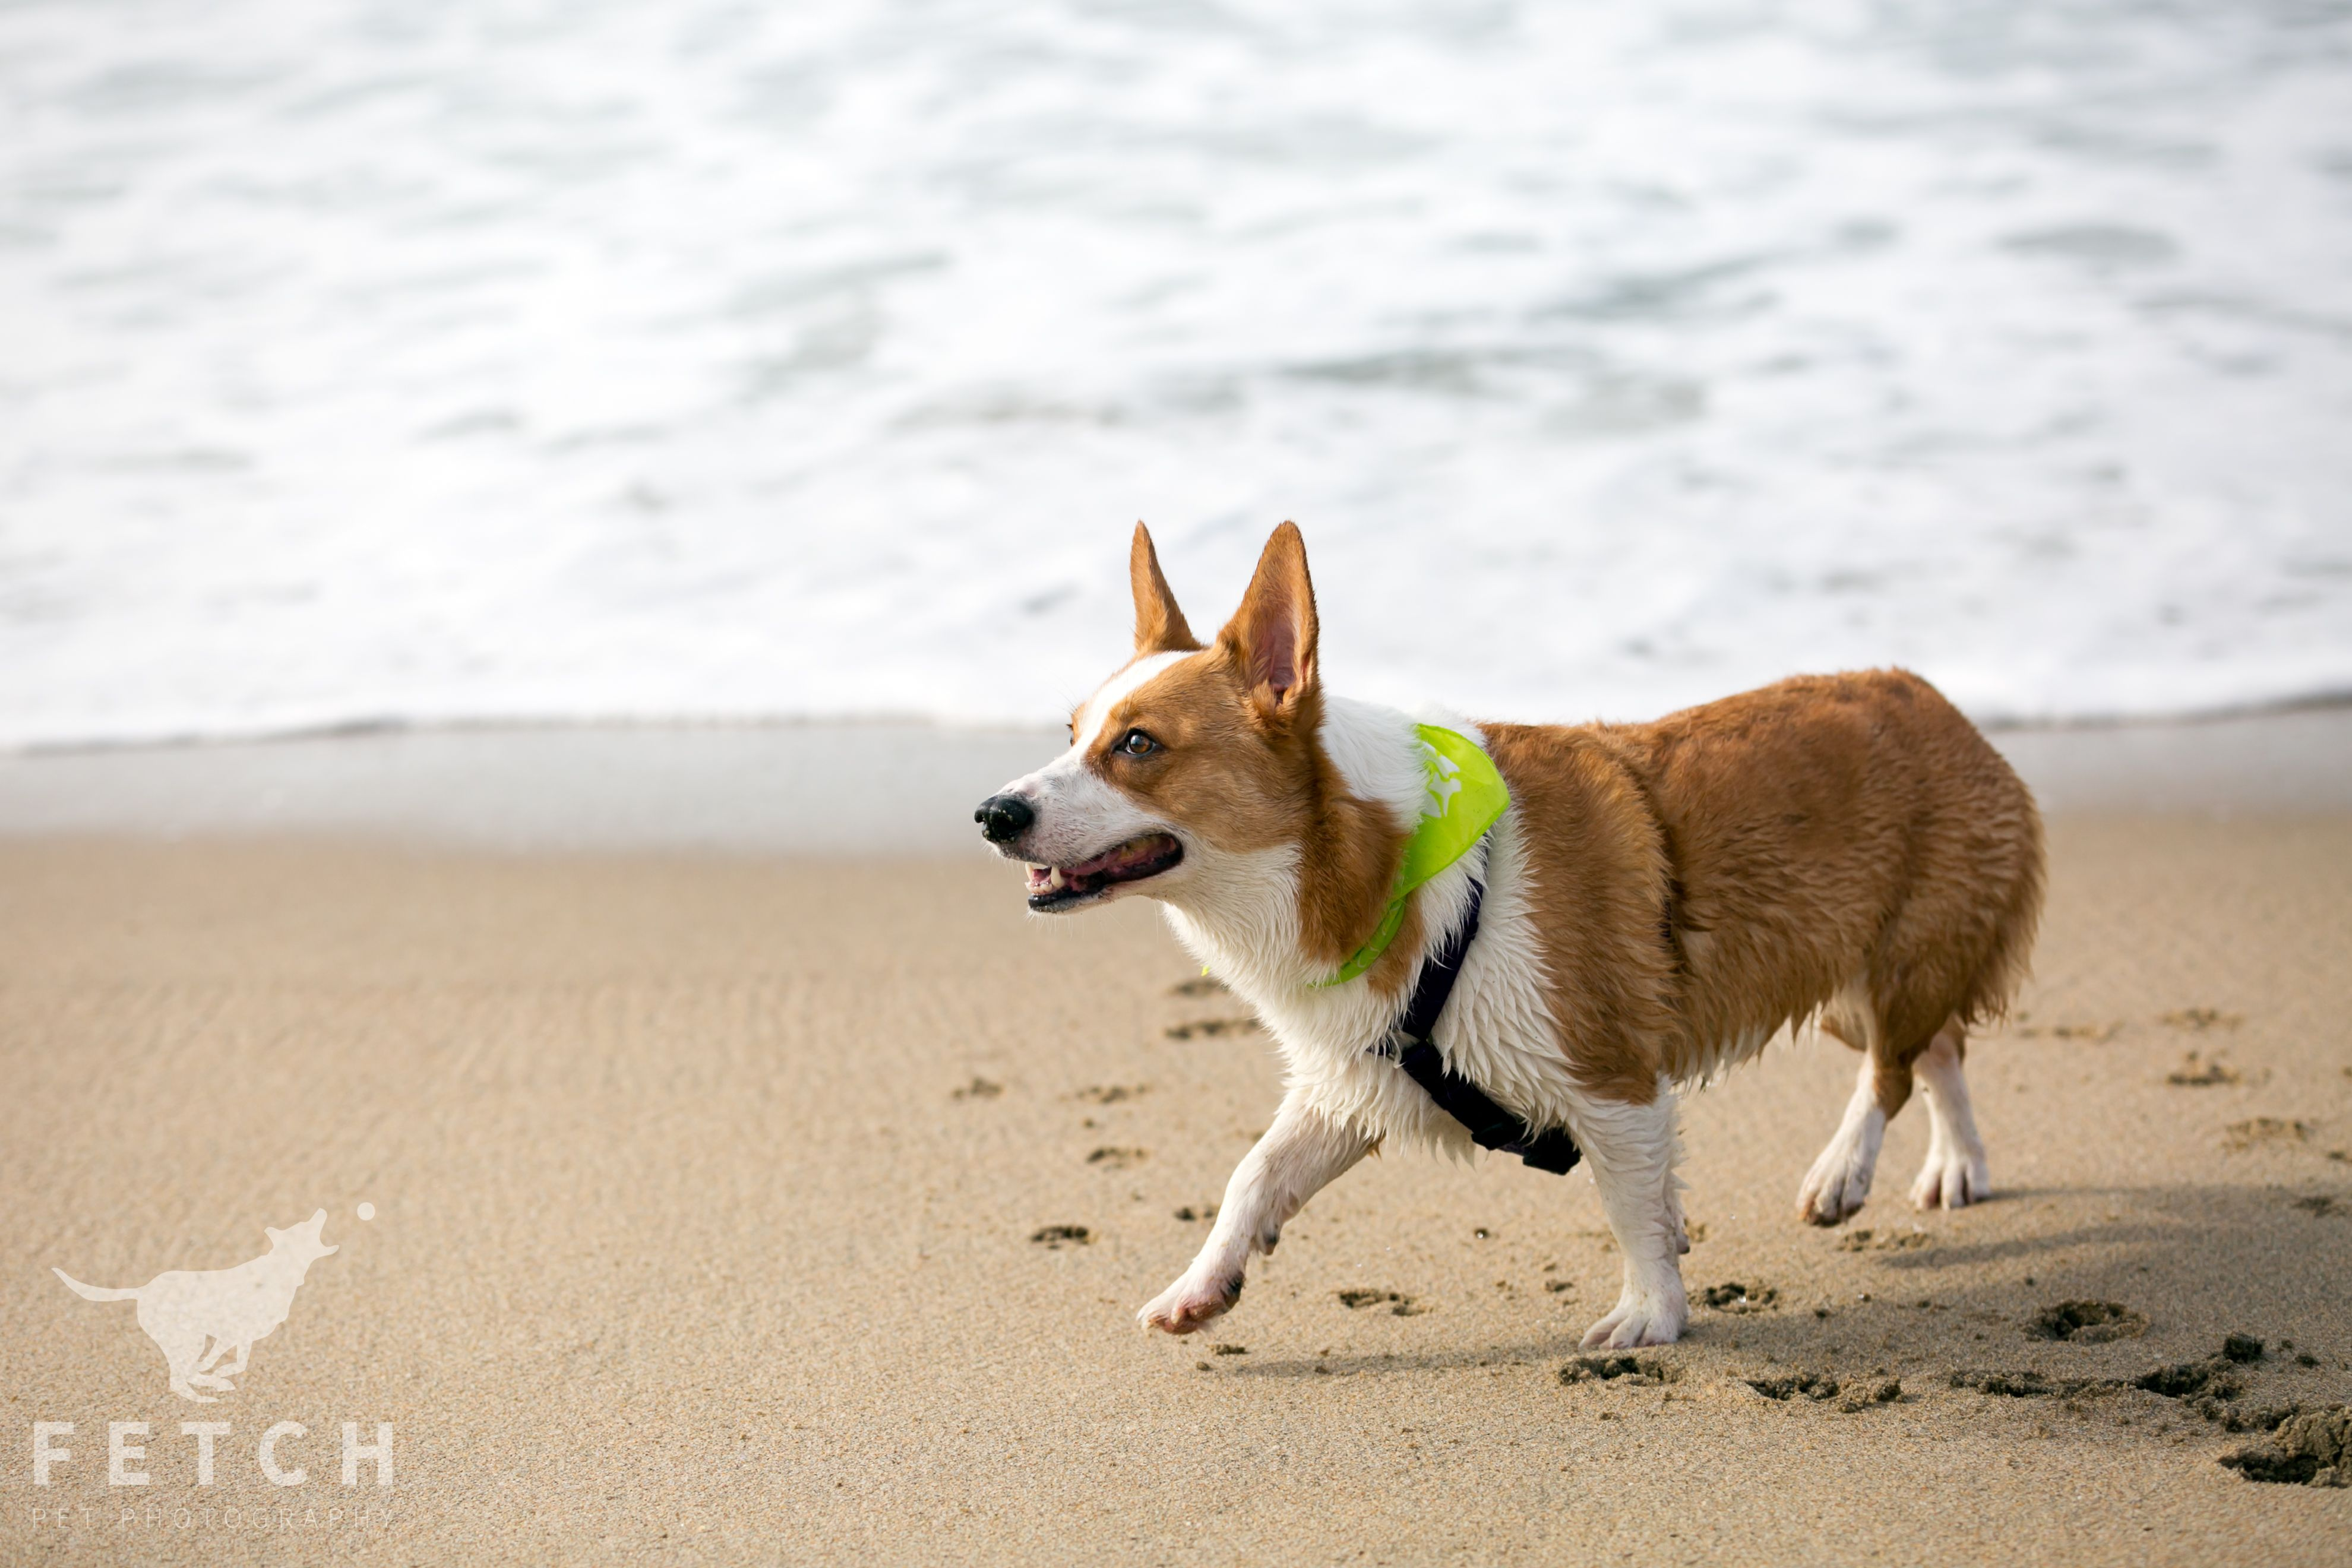 Fetch Photography | Los Angeles Pet Photographer #dog #dogs #dogphotography #doglover #actiondogs #corgi #fetchpetphotos #losangeles #petphotography